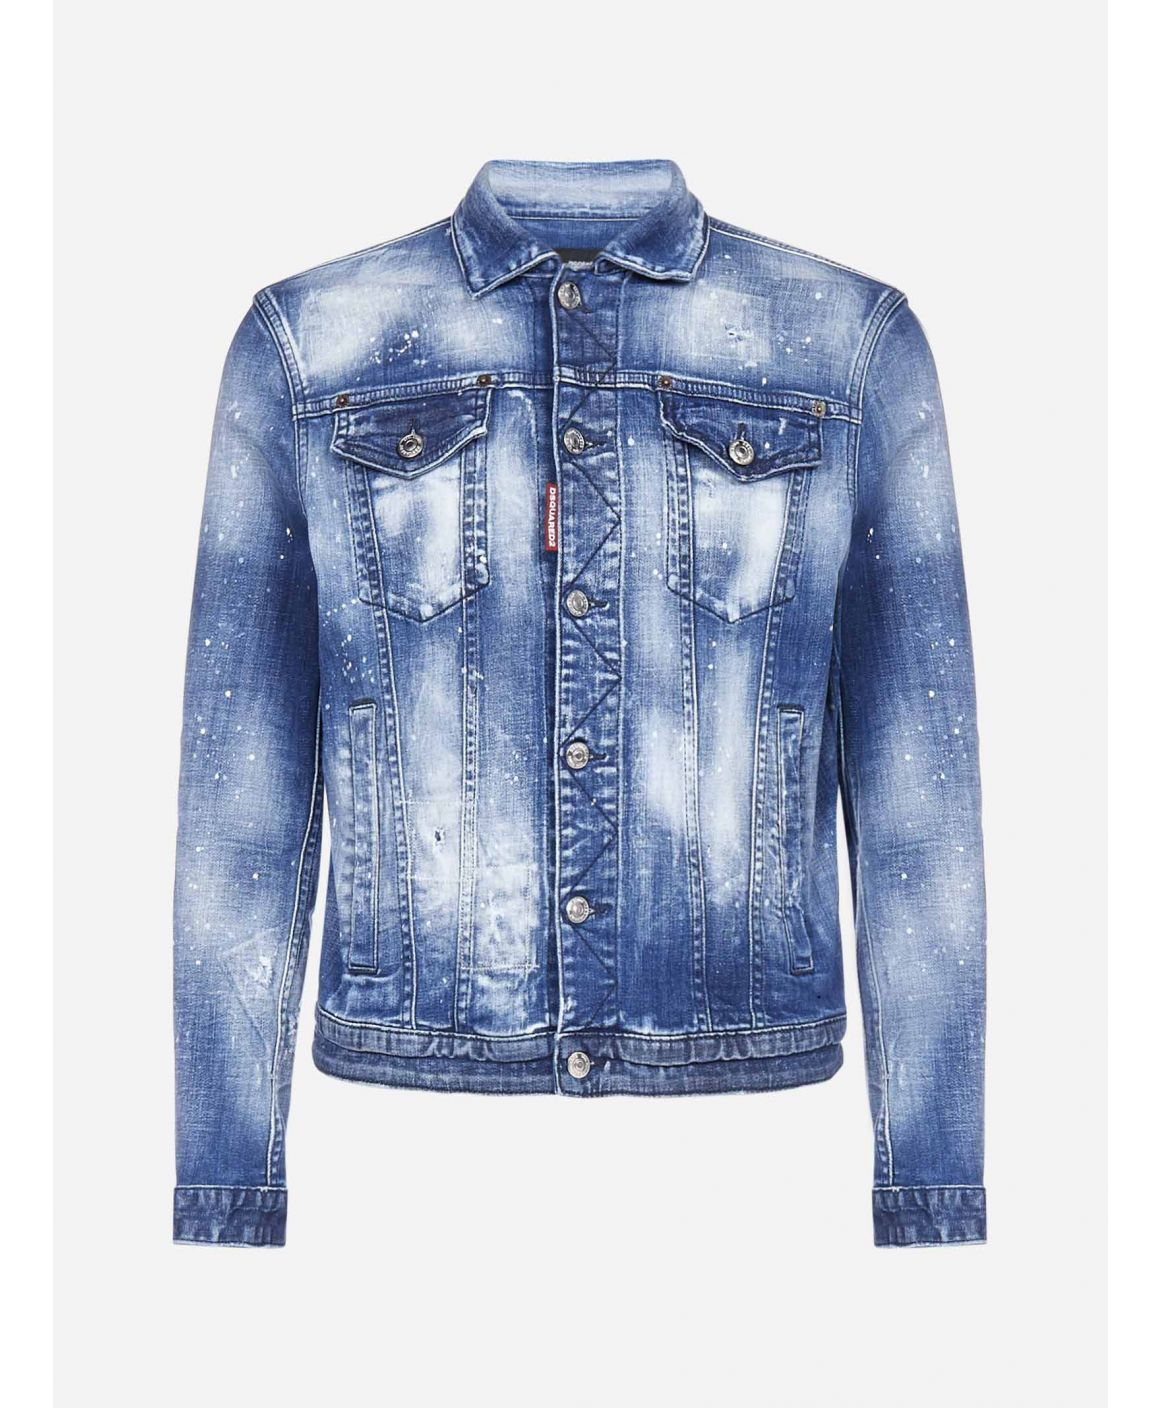 Dan vintage-spray style denim jacket